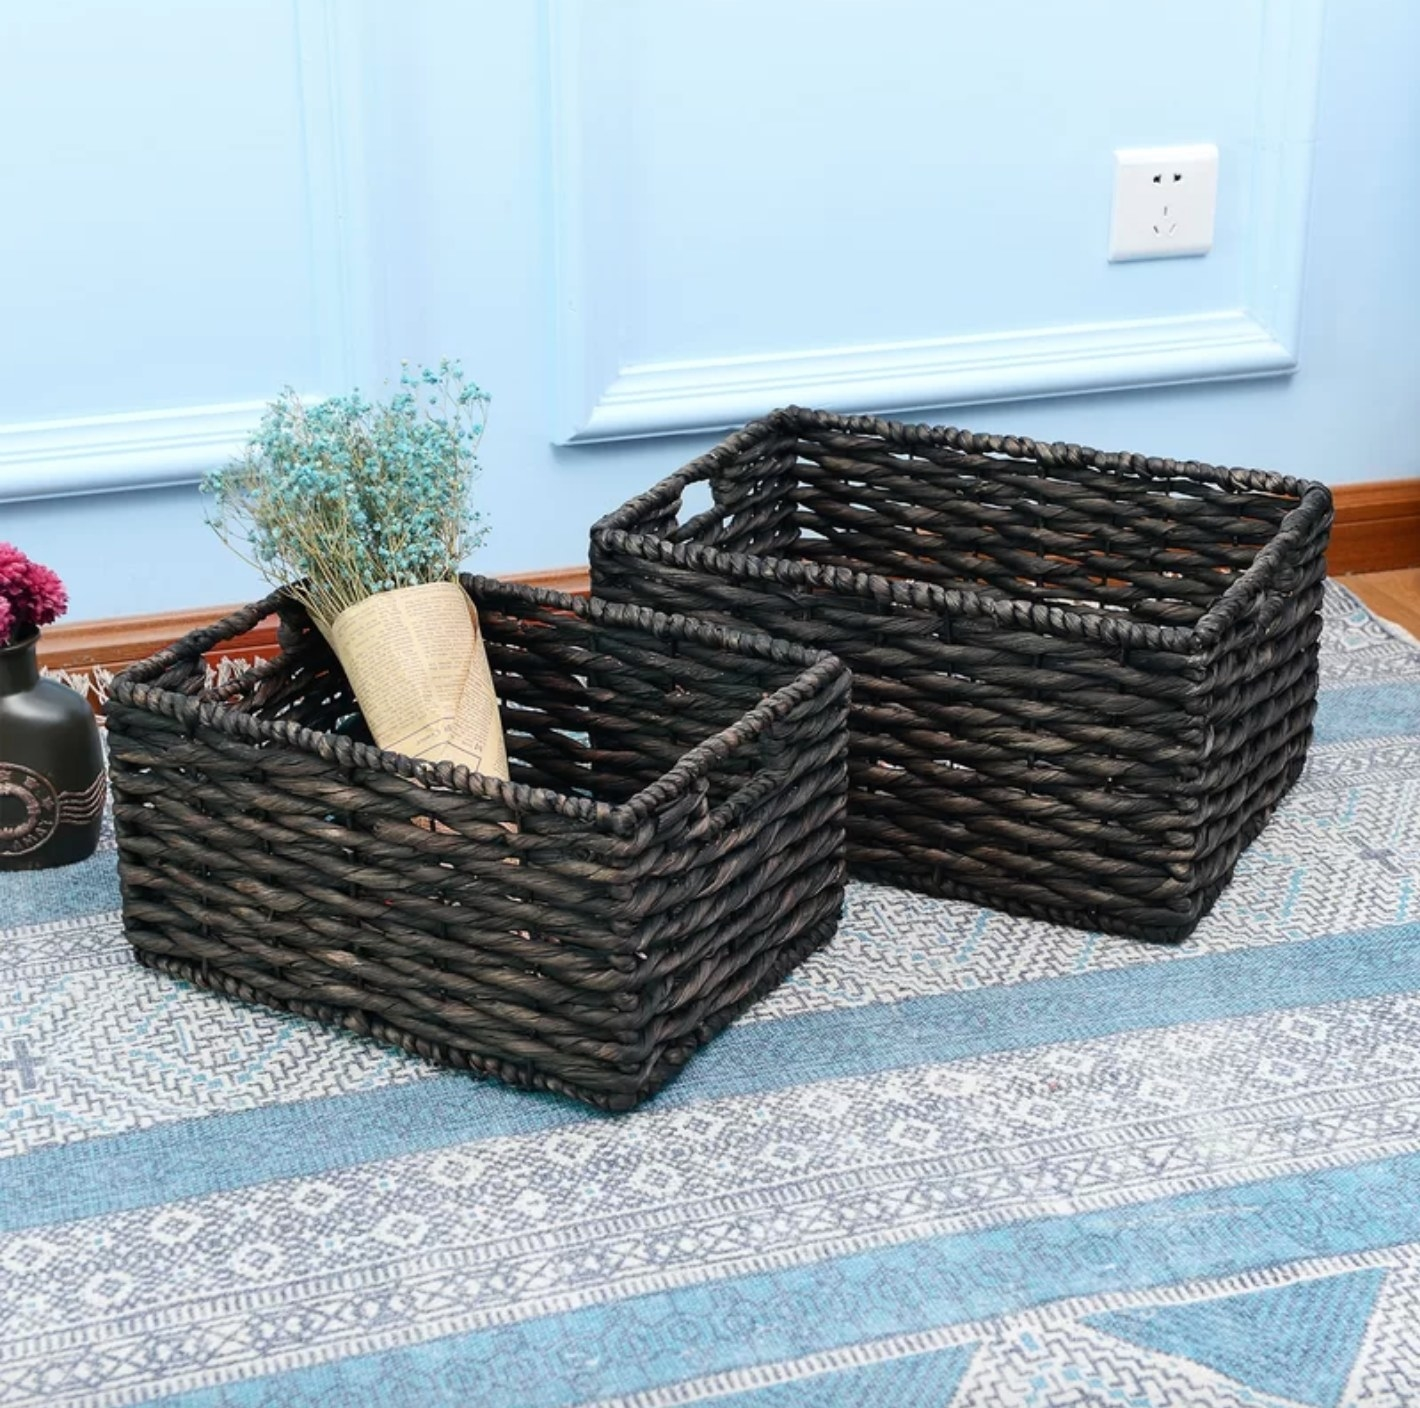 the brown wicker baskets